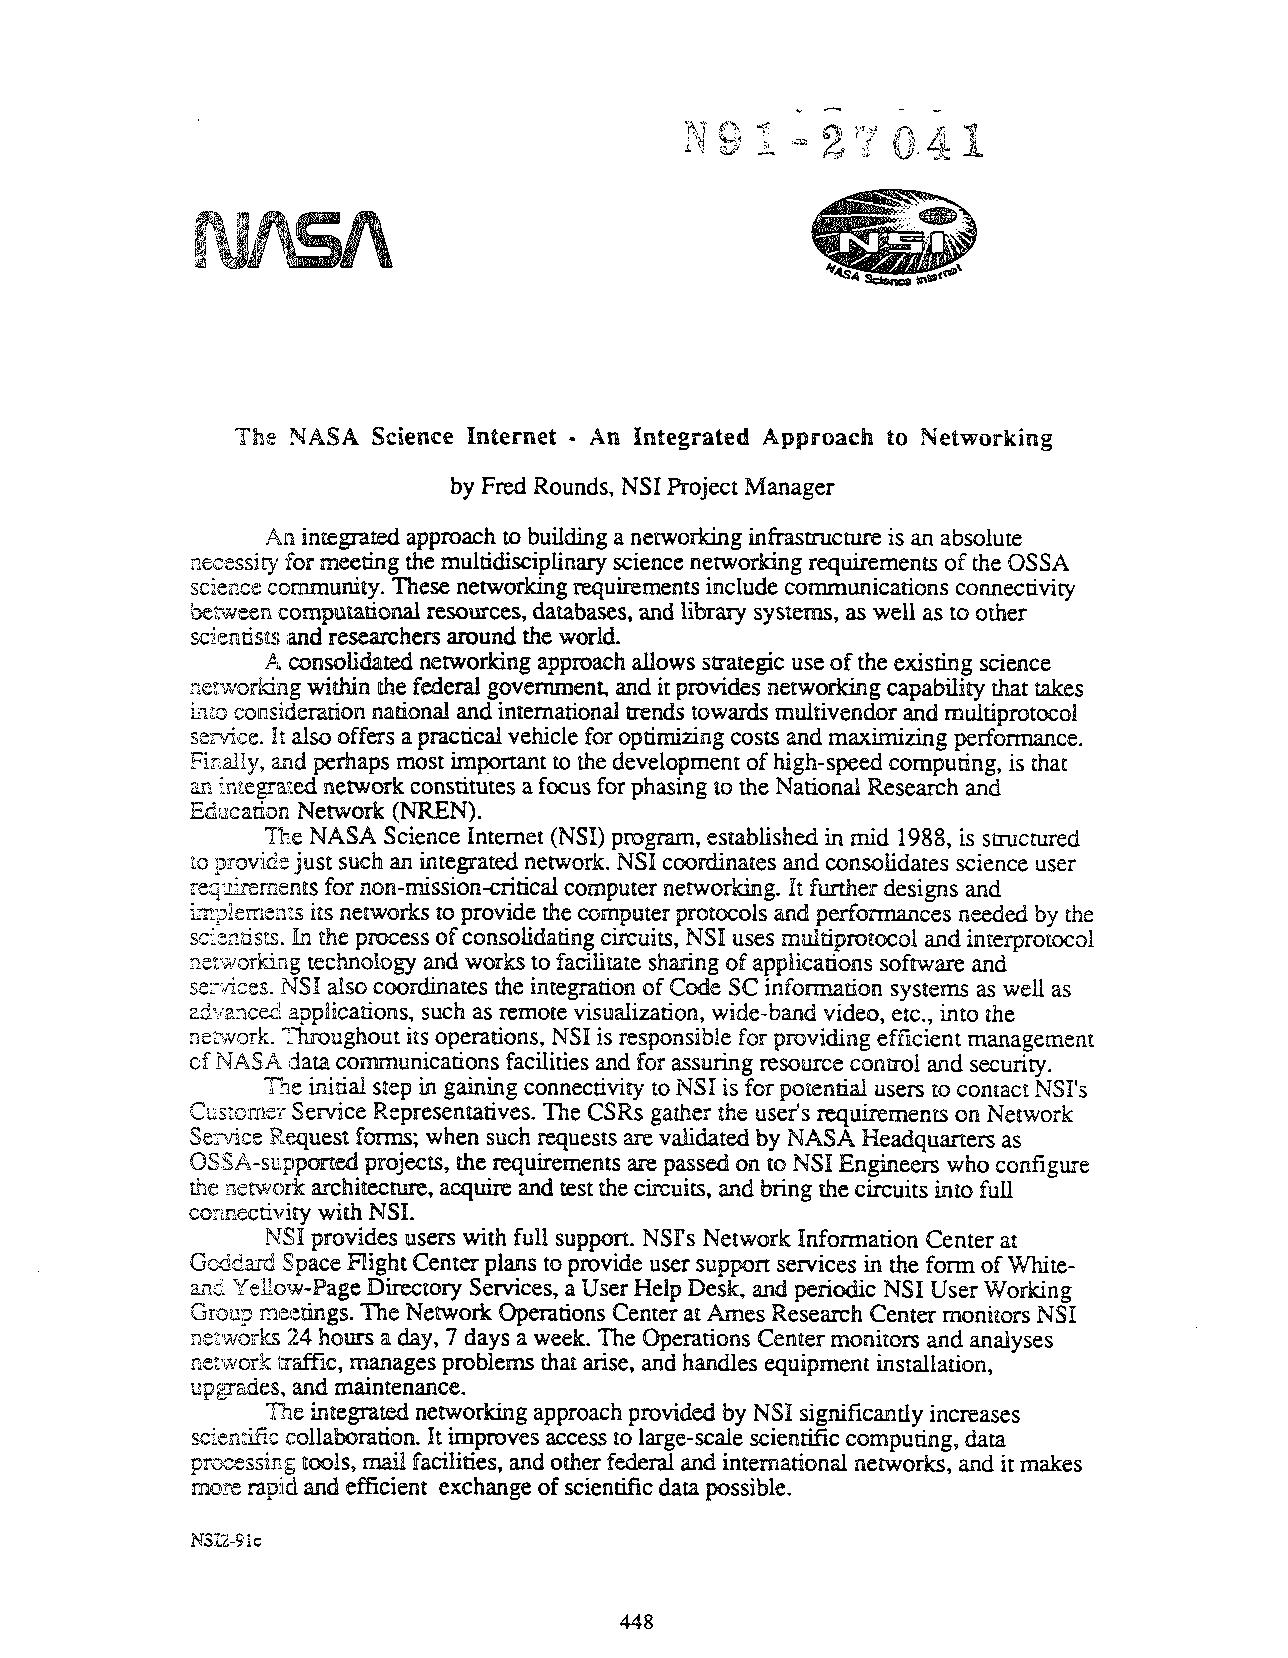 Fre Rounds - The NASA Science Internet: An integrated approach to networking